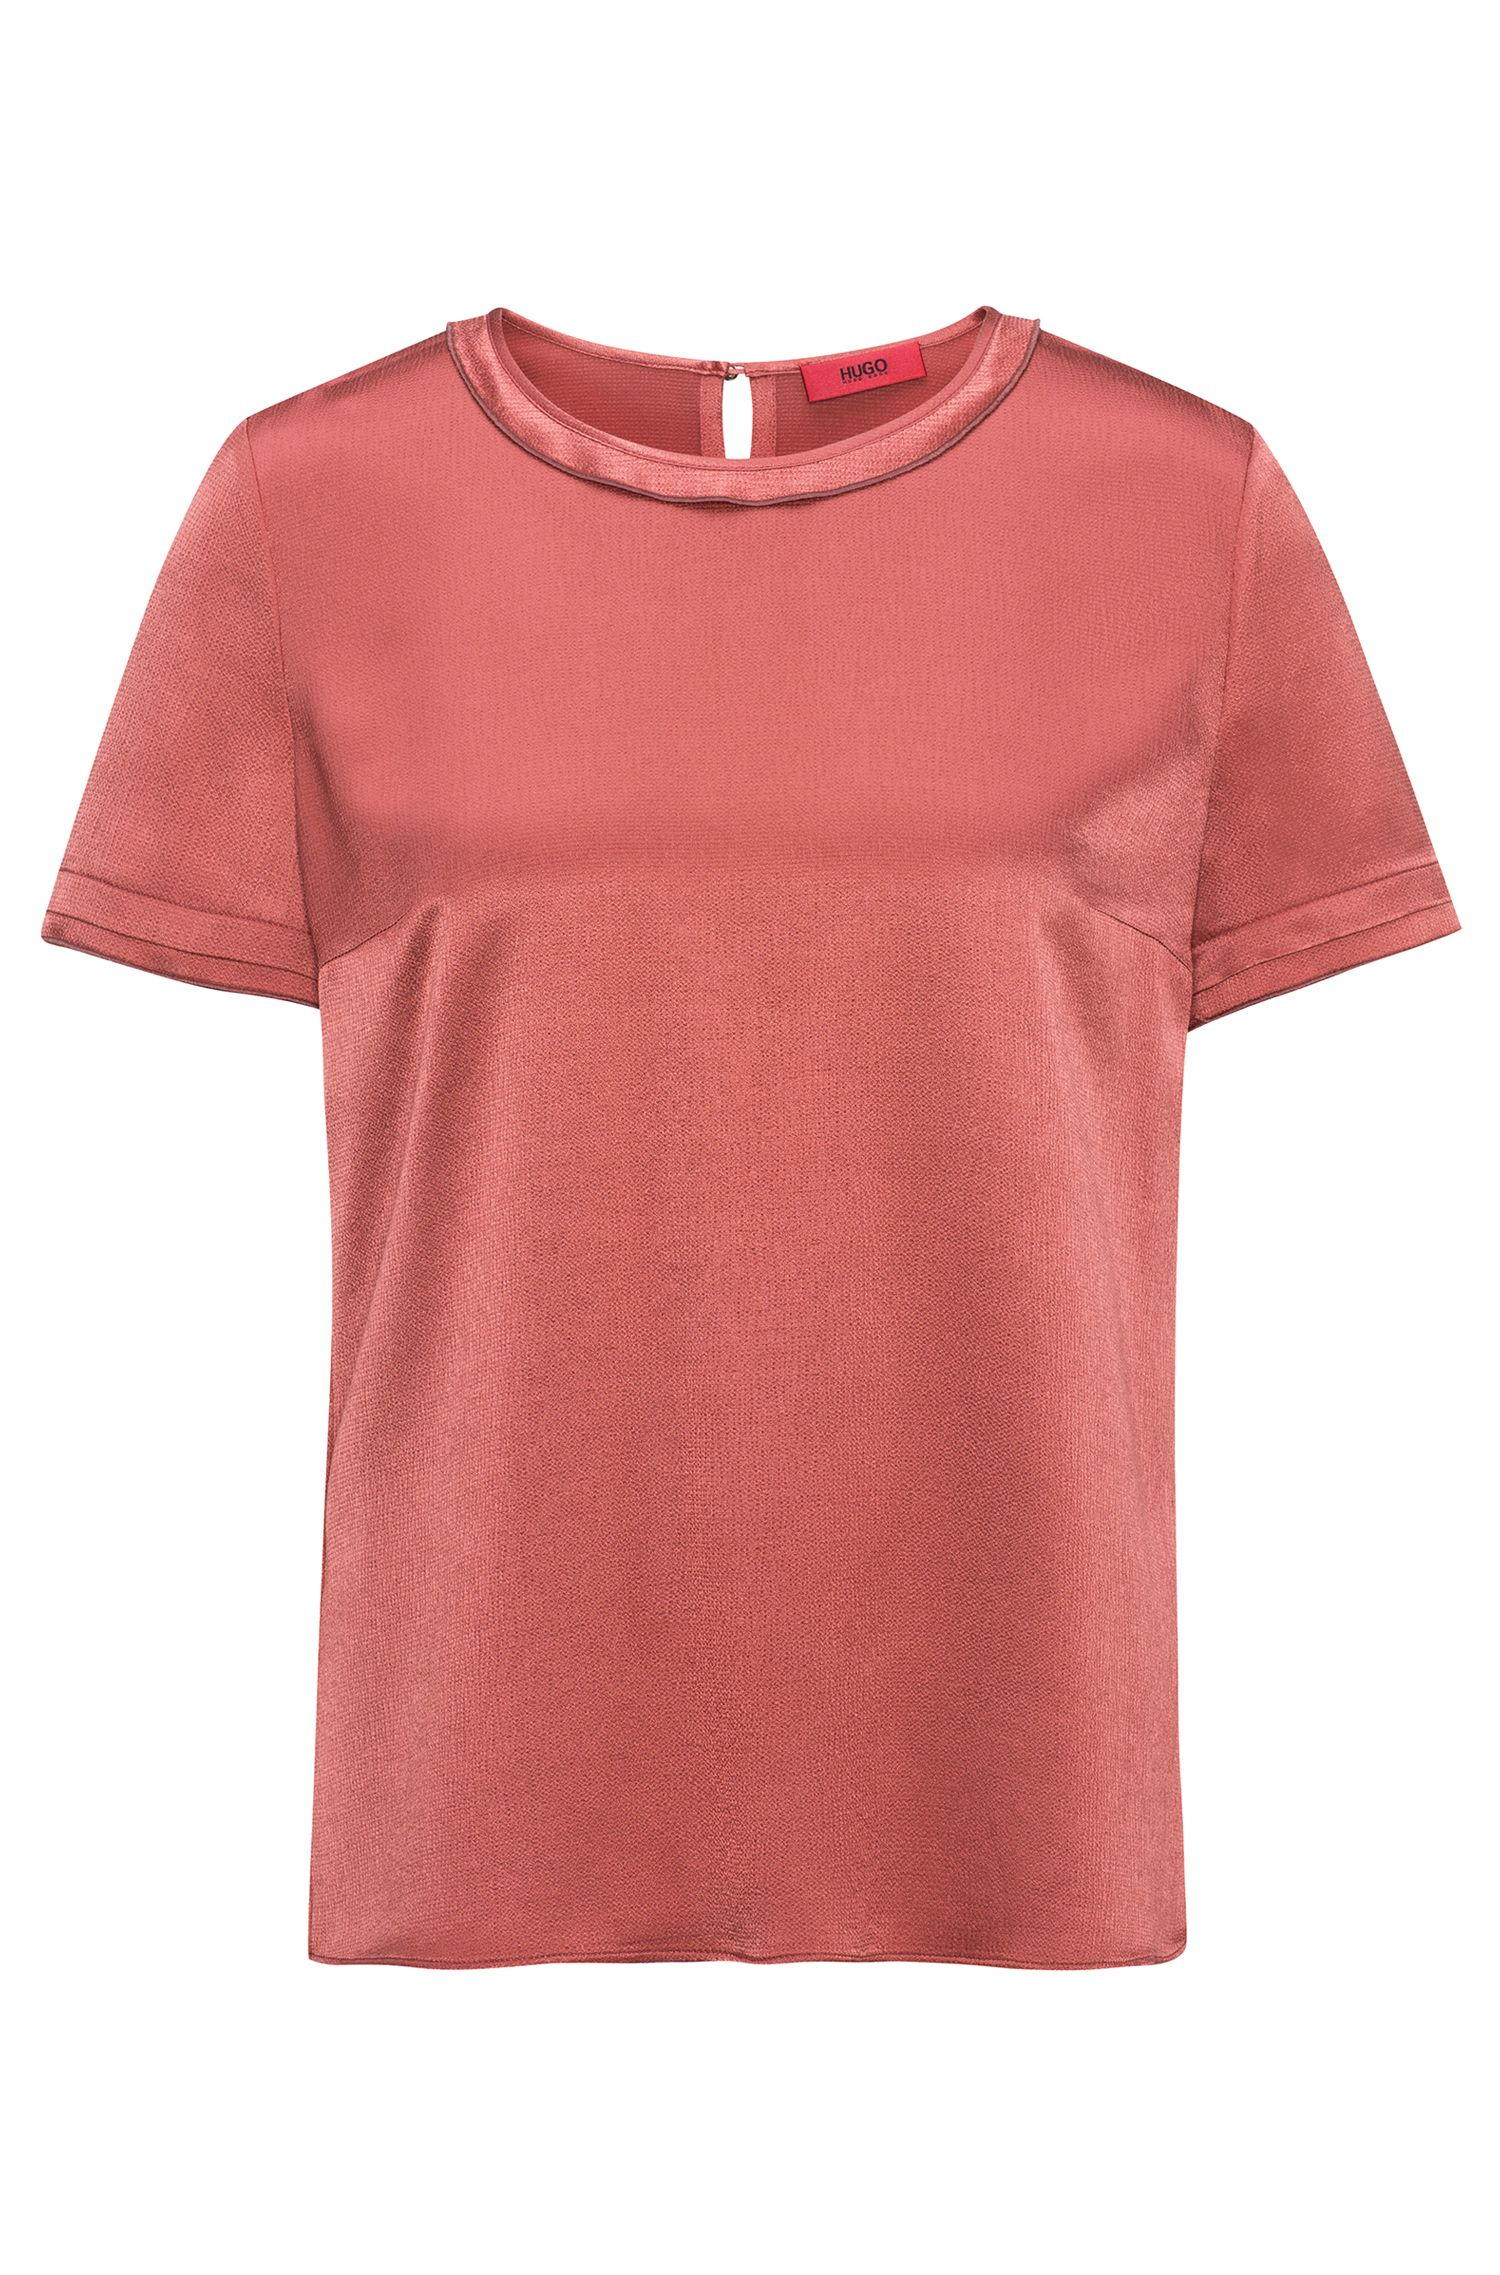 Regular-fit T-shirt top in silky fabric